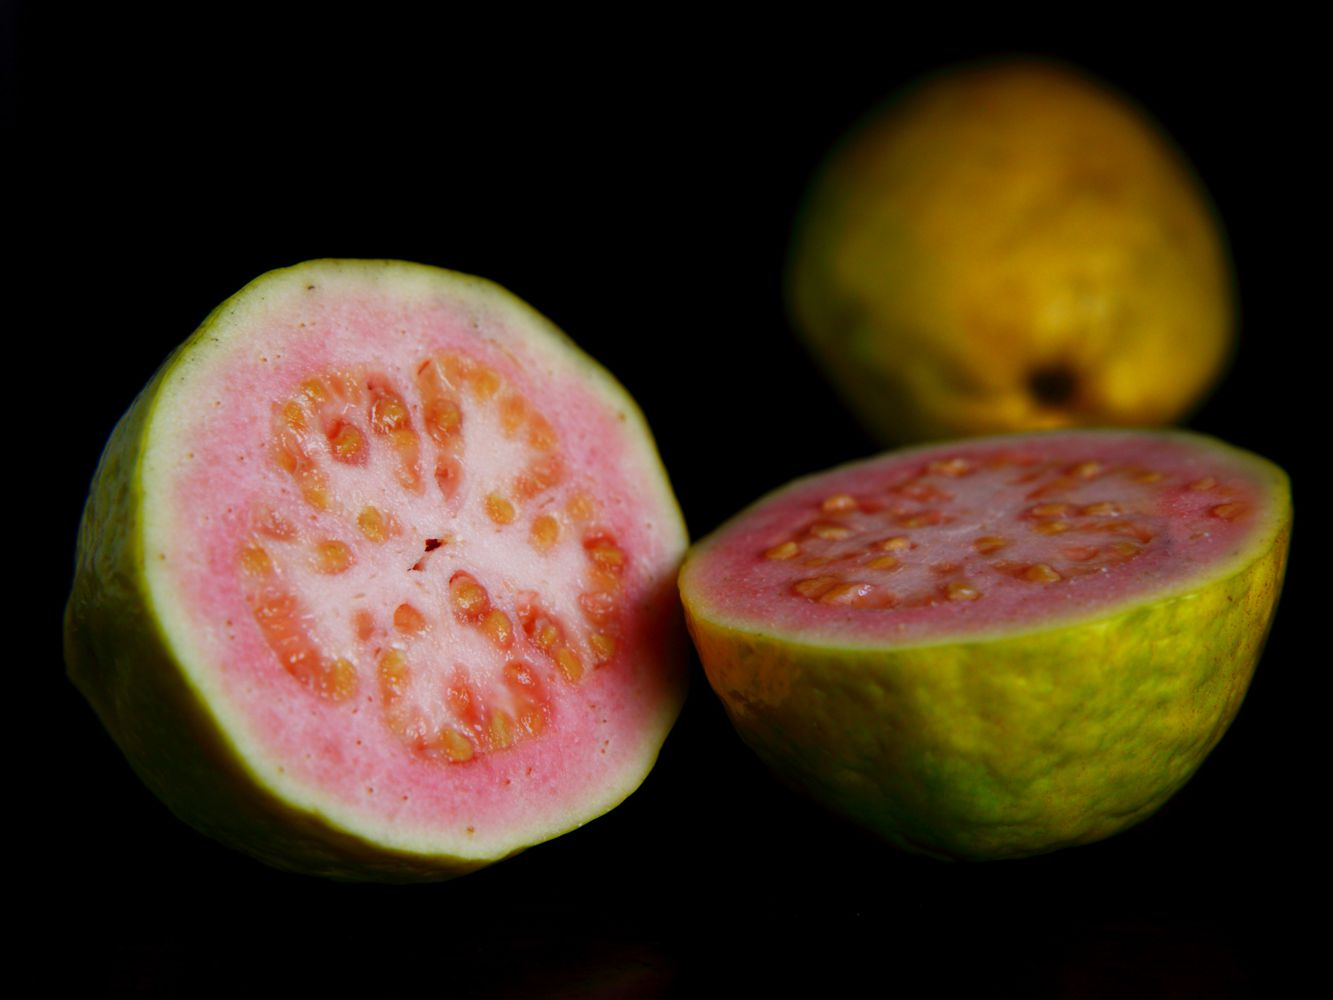 Carb Counts and Health Benefits of Guava